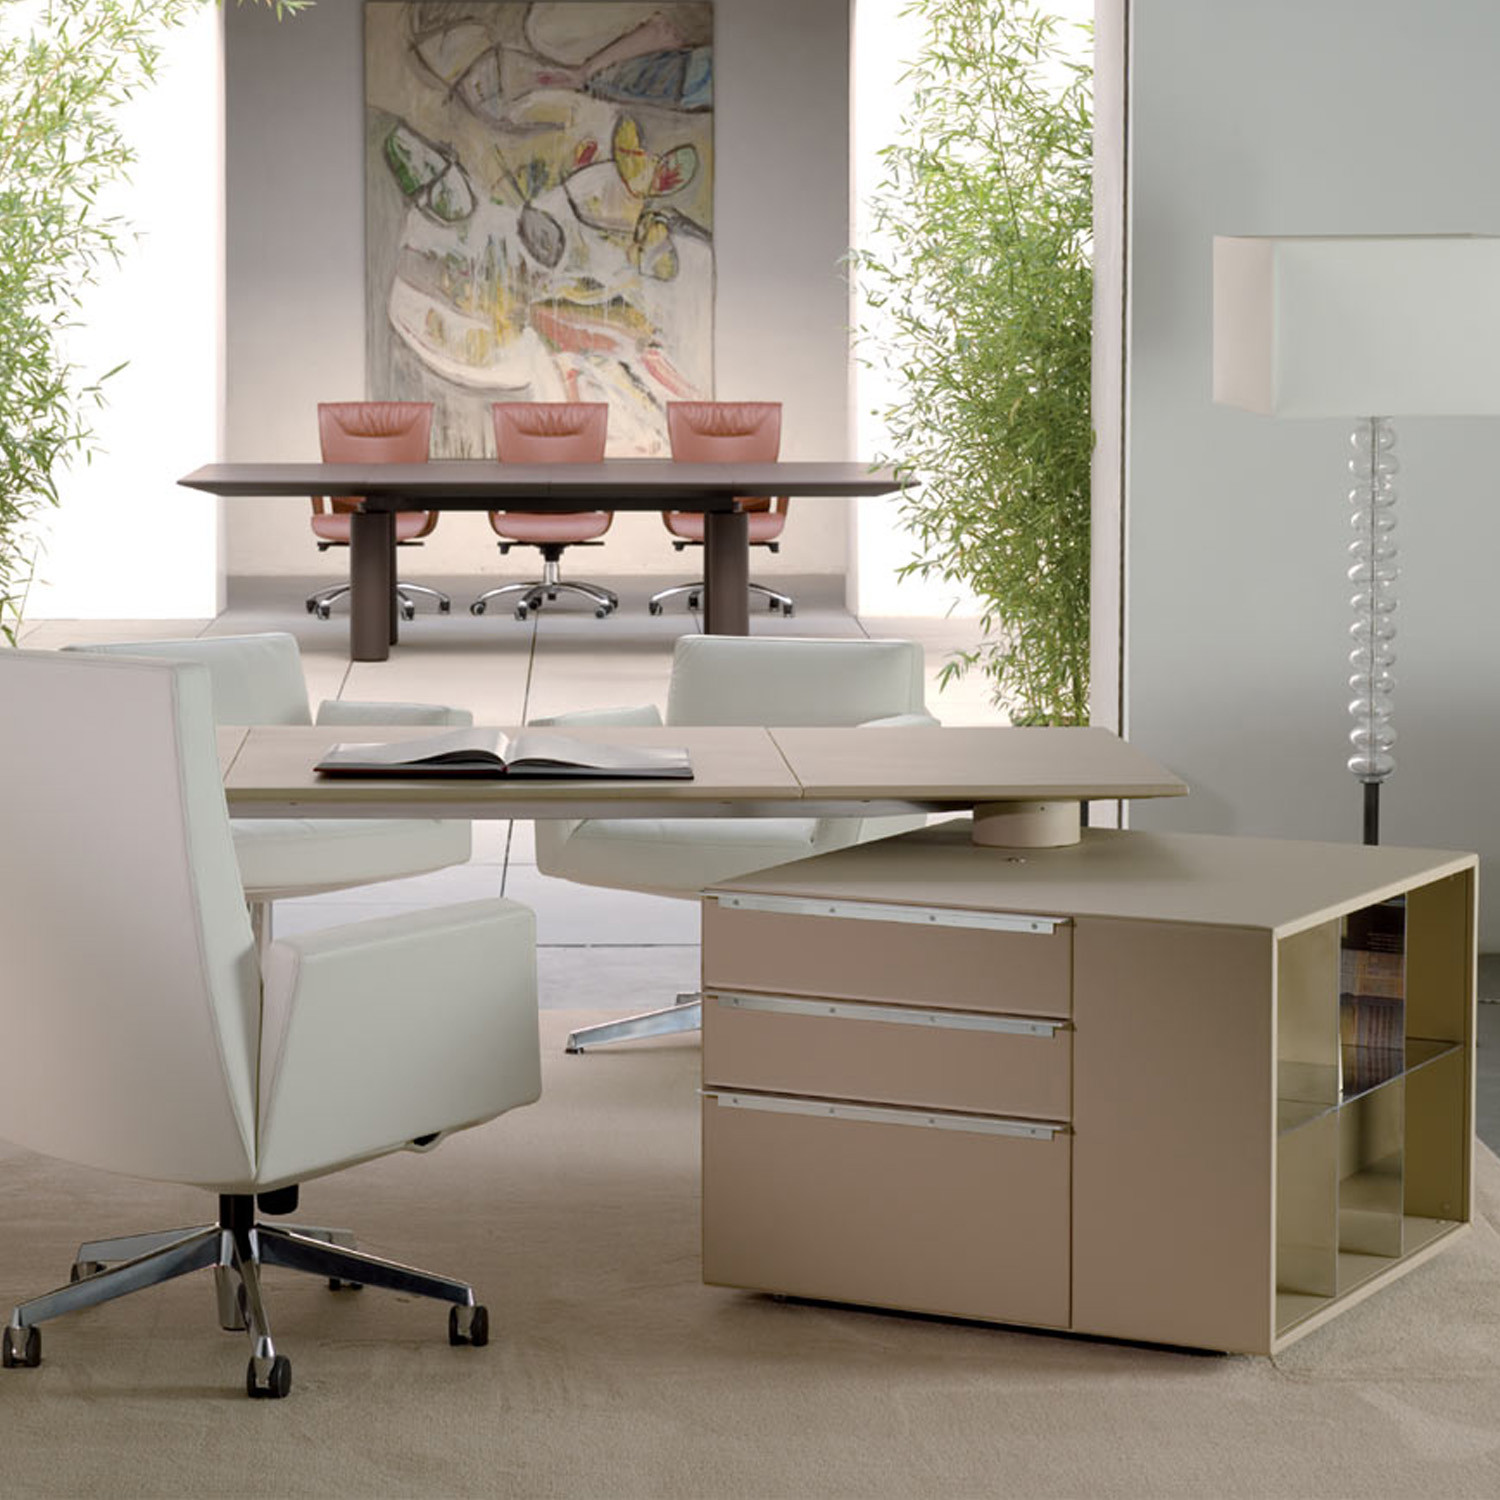 Poltrona Frau CEO Desk Rotated